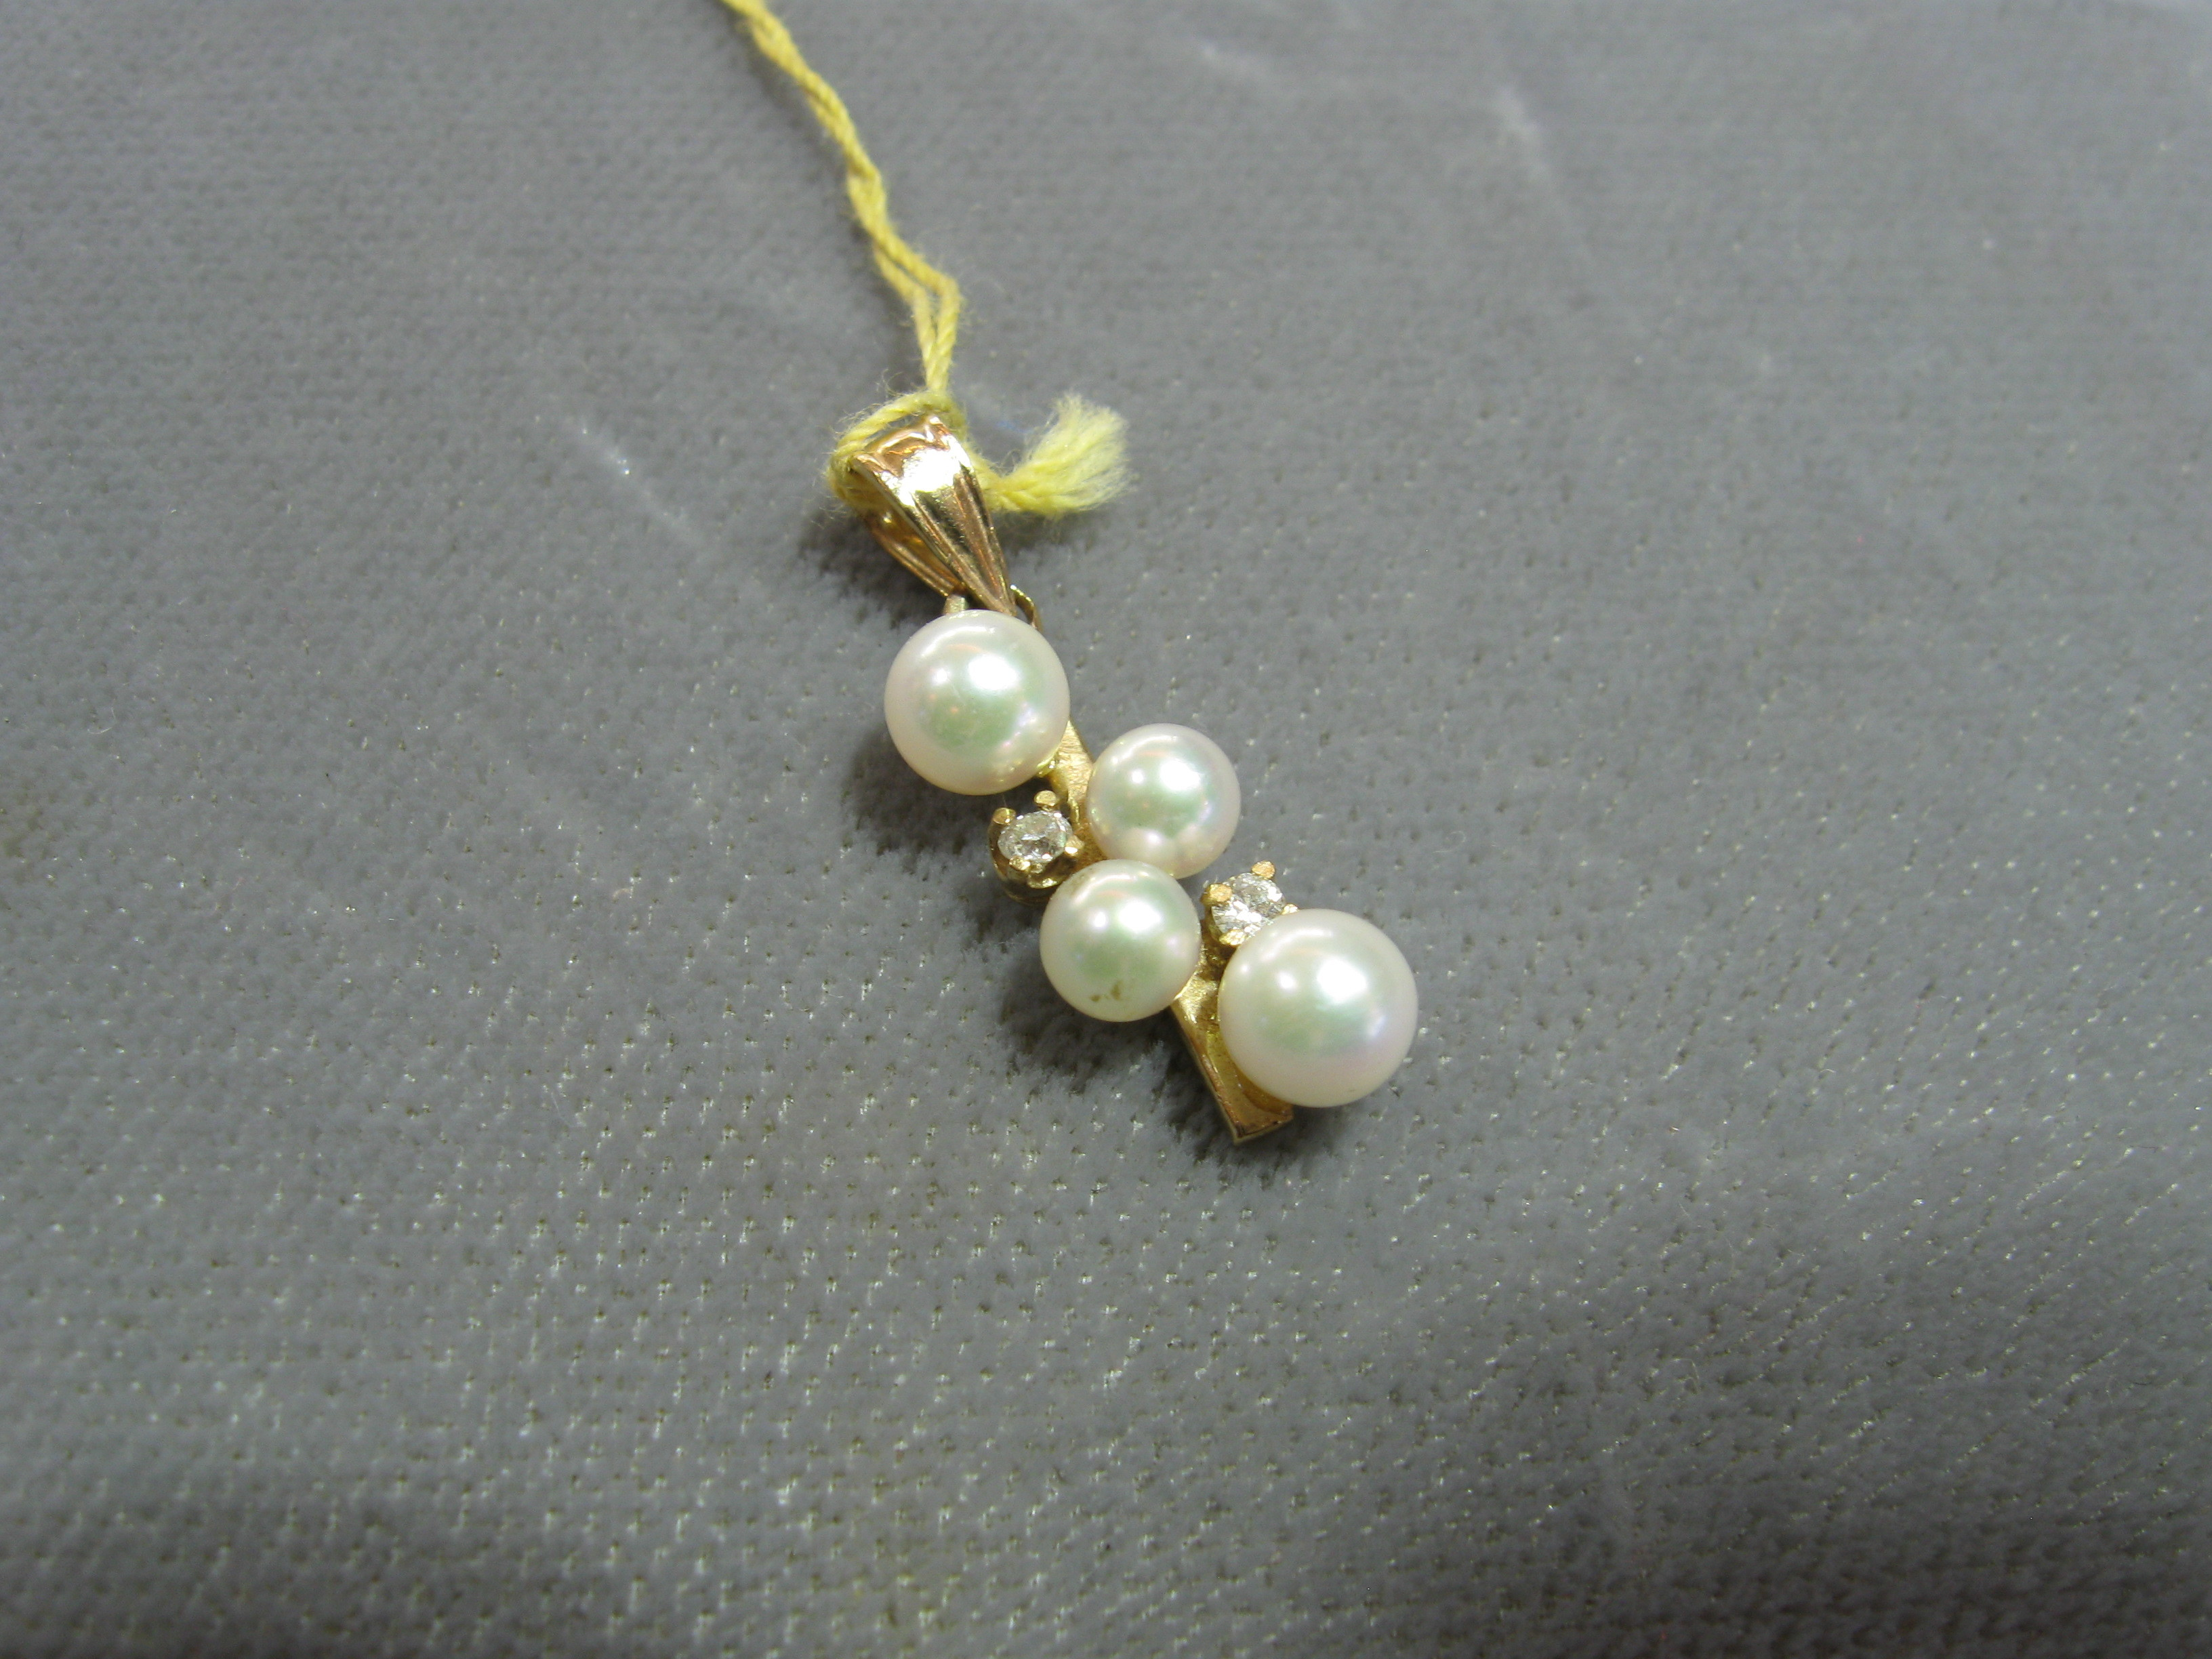 4 Round White Pearls and 2 Round Brilliant Cut Diamonds Set in 14kt Yellow Gold Pendant